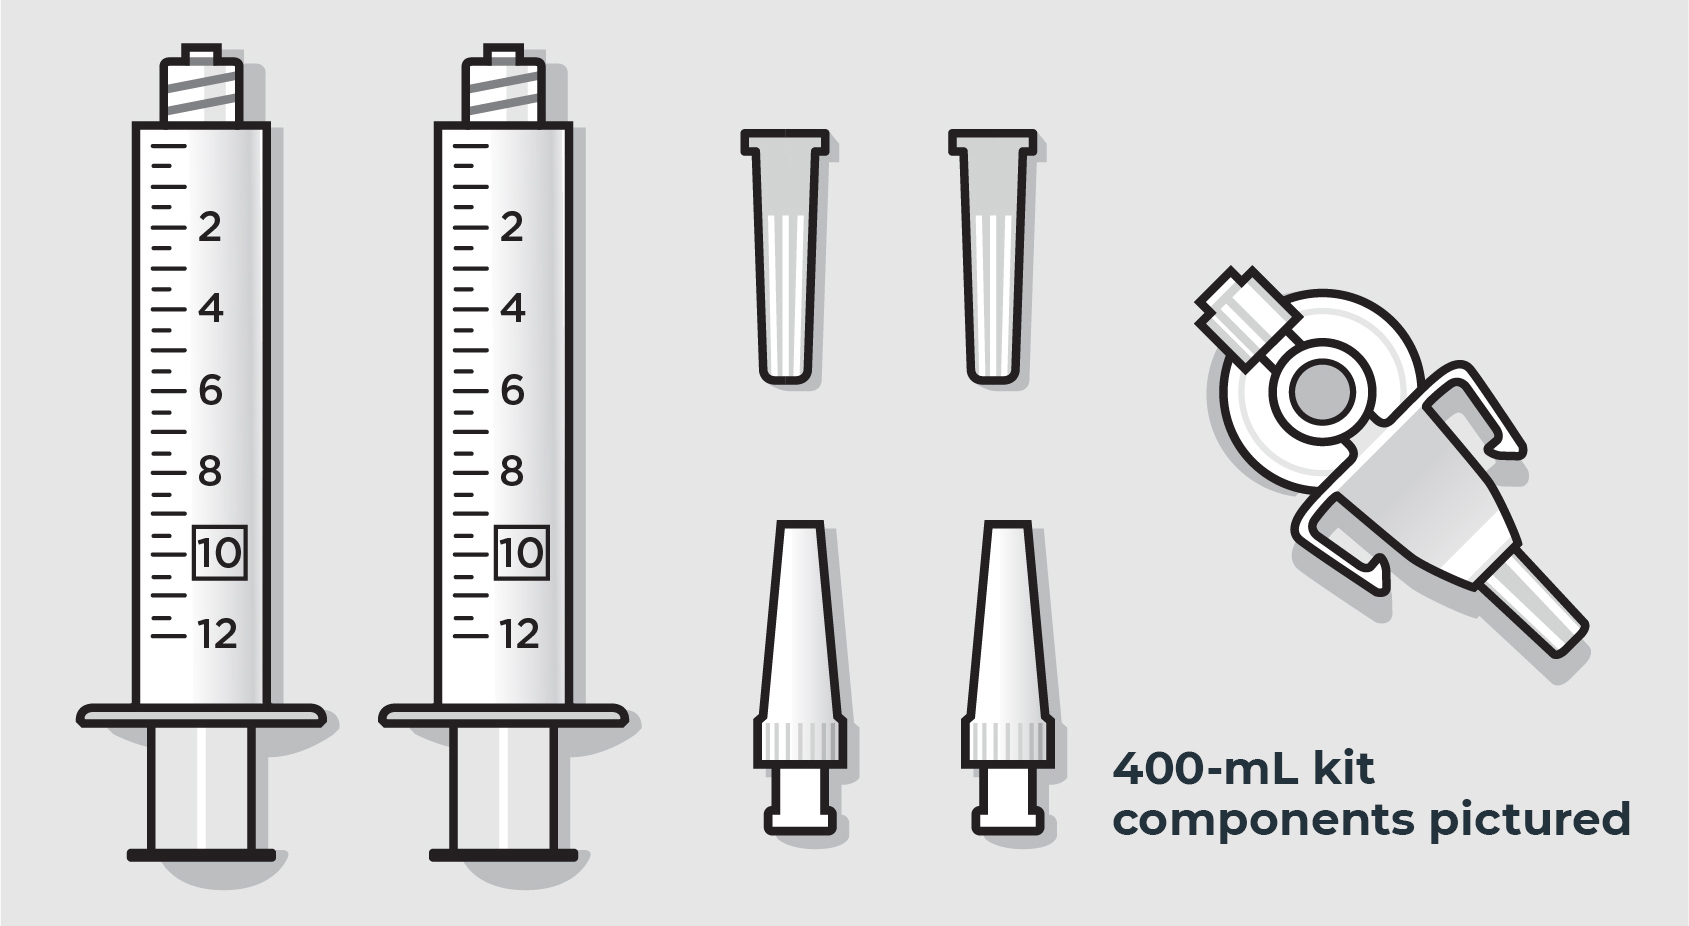 400-mL kit components; 2 syringes, 2 needle-free tips, 2 tip caps, 1 vented vial spike.